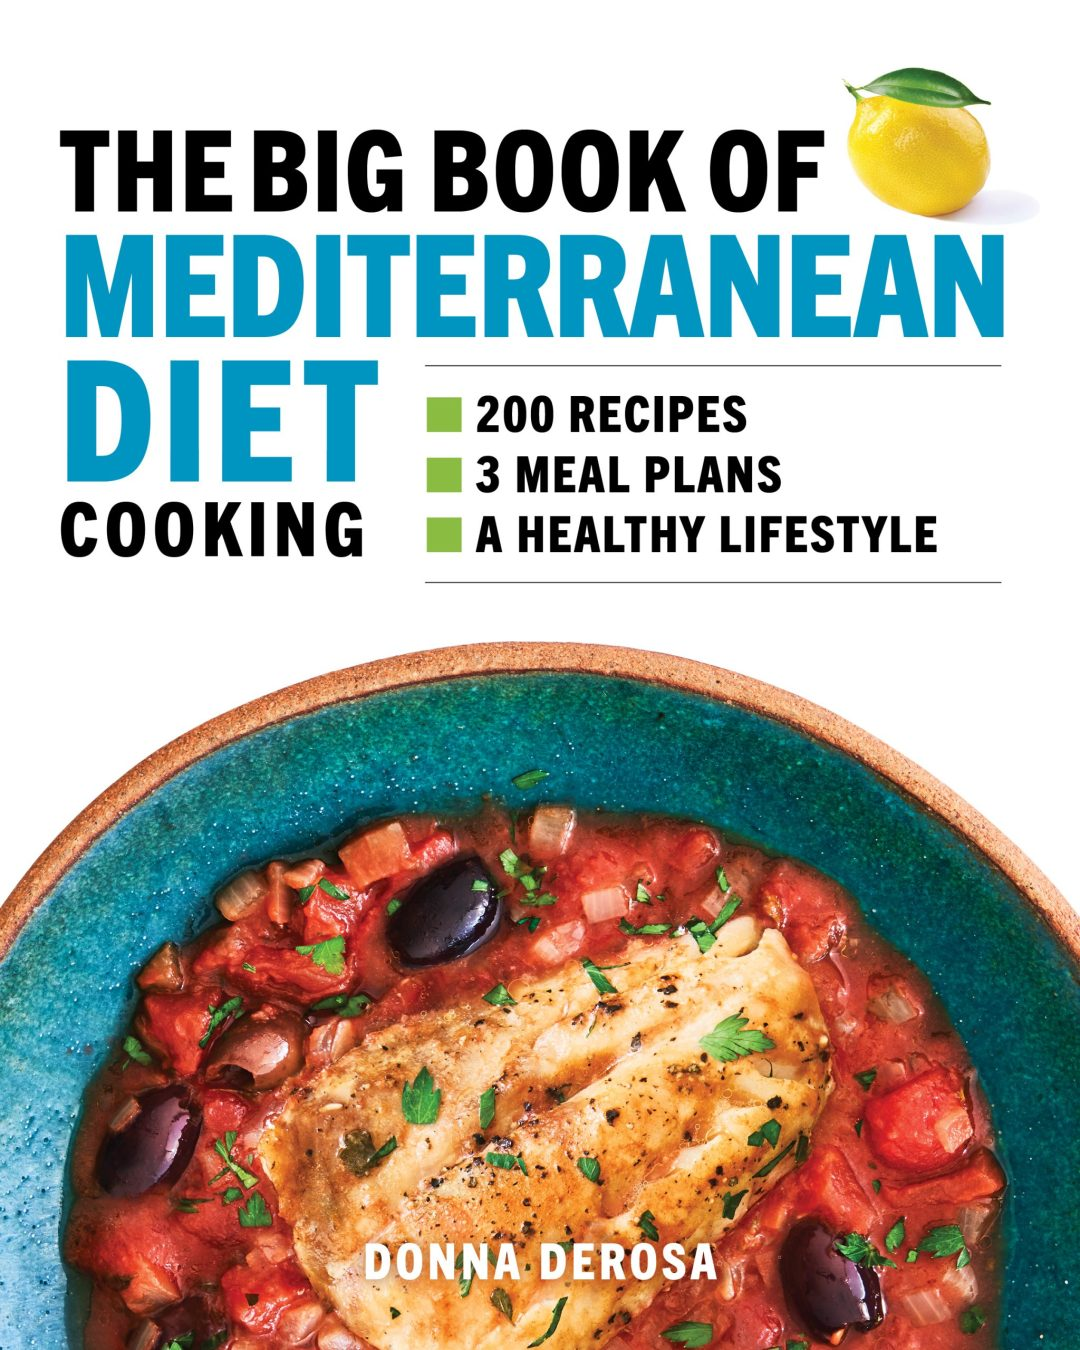 Big Book of Mediterranean Diet Cooking